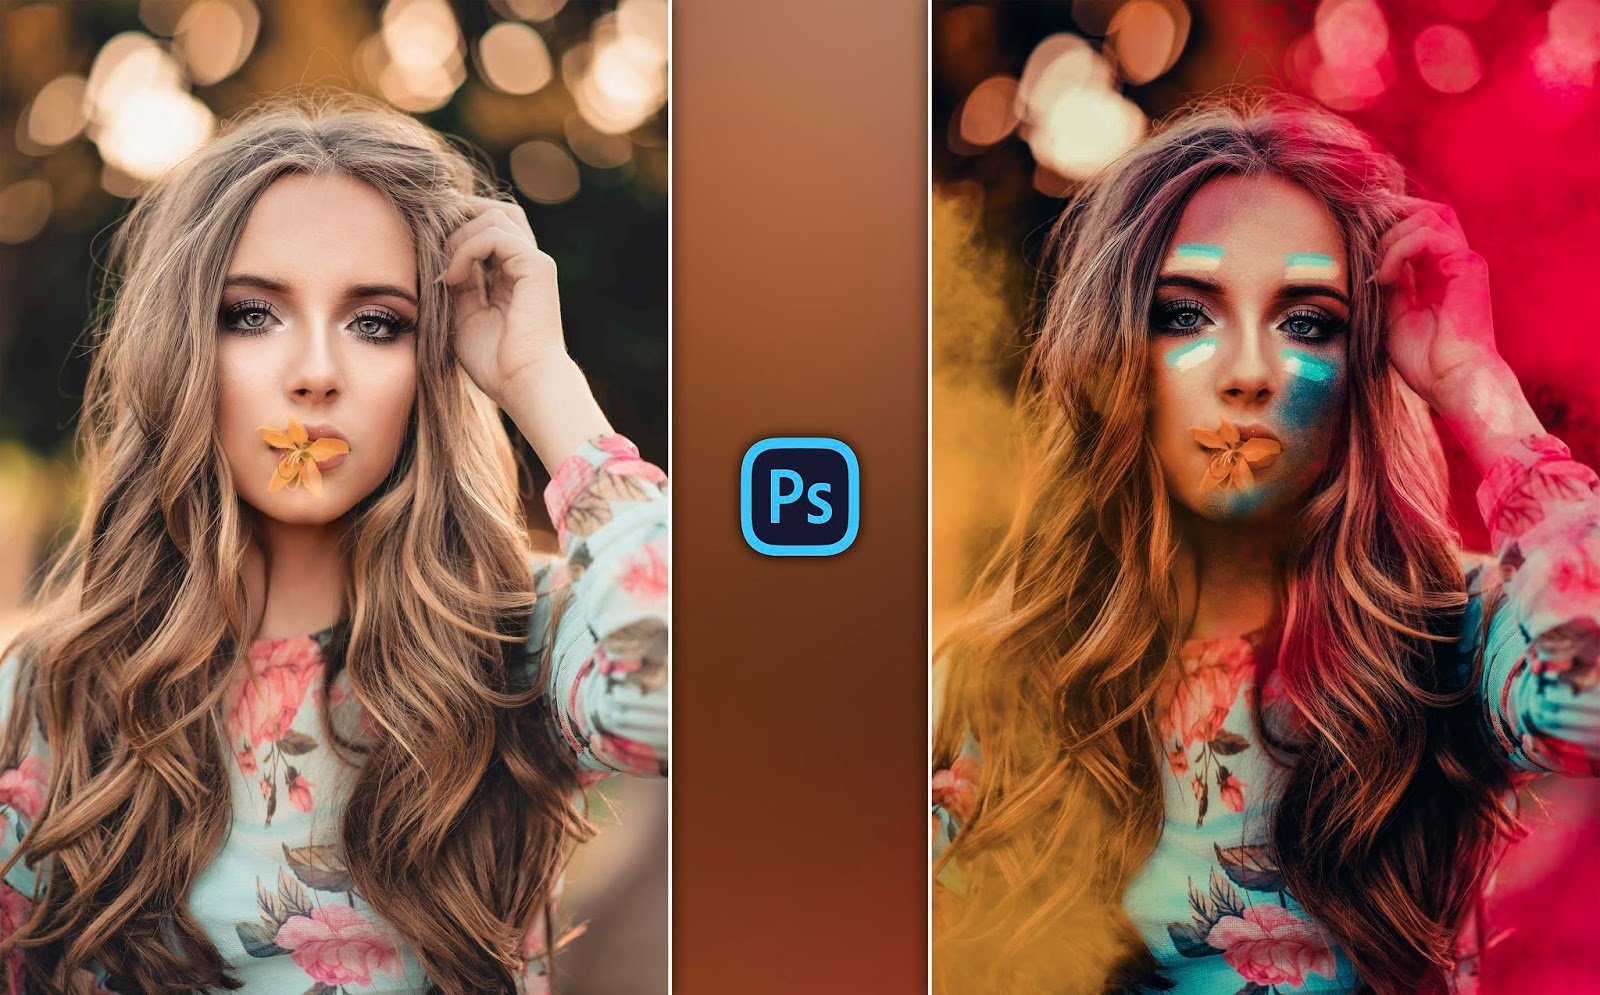 Holi Special Girl Photo Editing in Photoshop cc | Colorful Girl Portrait Editing for Instagram